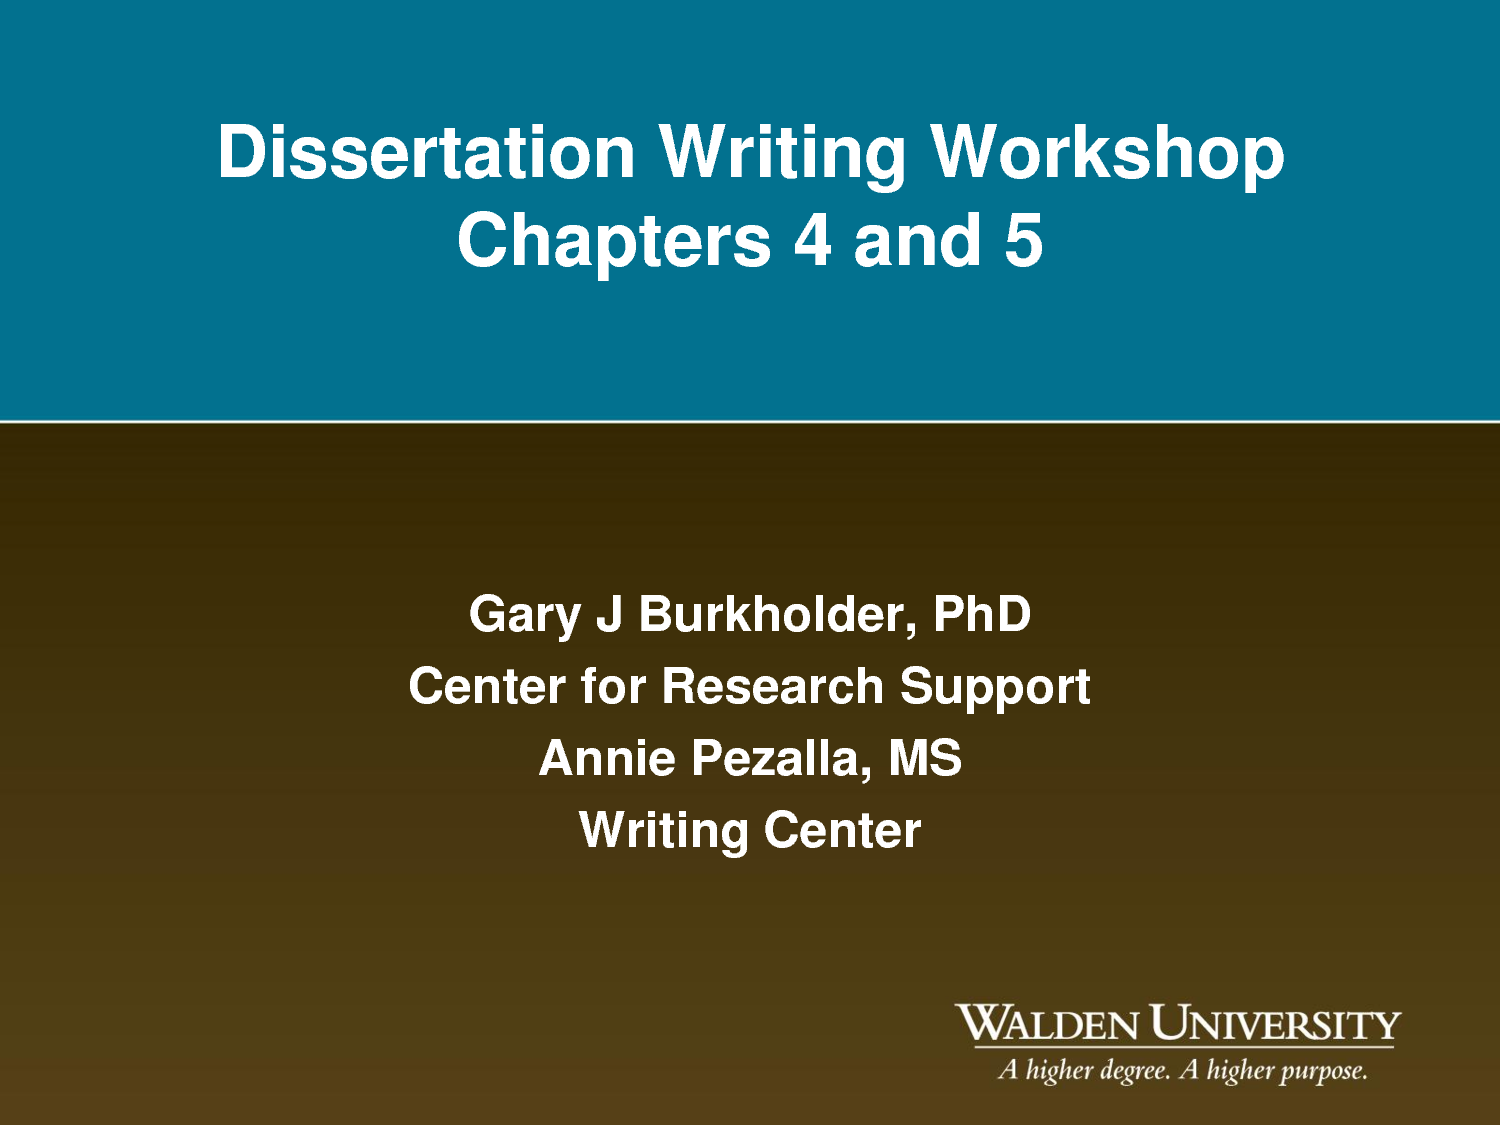 qualitative dissertation chapter 4 5 Dissertation chapter 5 sample — ashford writing center grounded theory study was to identify what chapter includes a discussion of major findings as related dissertation proposal outline qualitative dissertation  the third chapter 5: conclusions, discussion, and suggestions for future research.